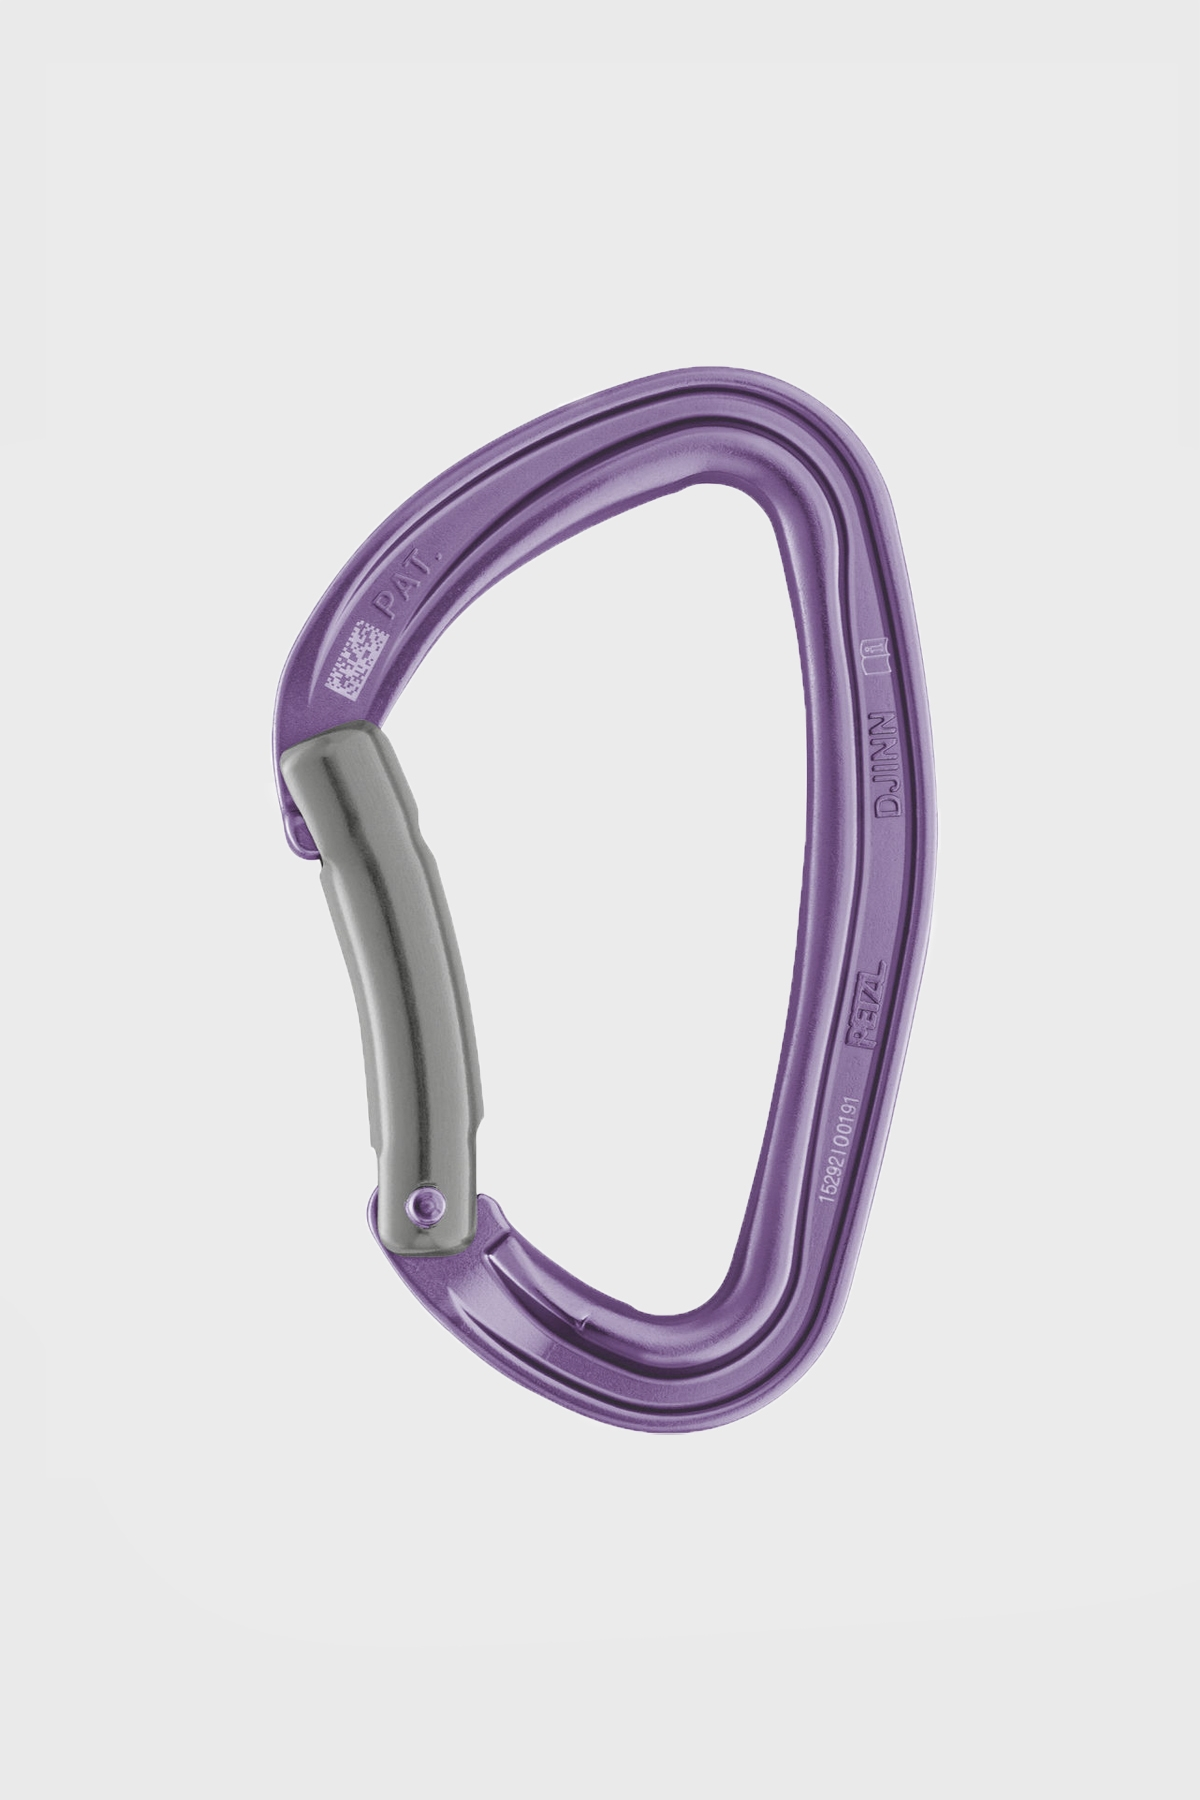 Petzl - Djinn Courbe - Purple